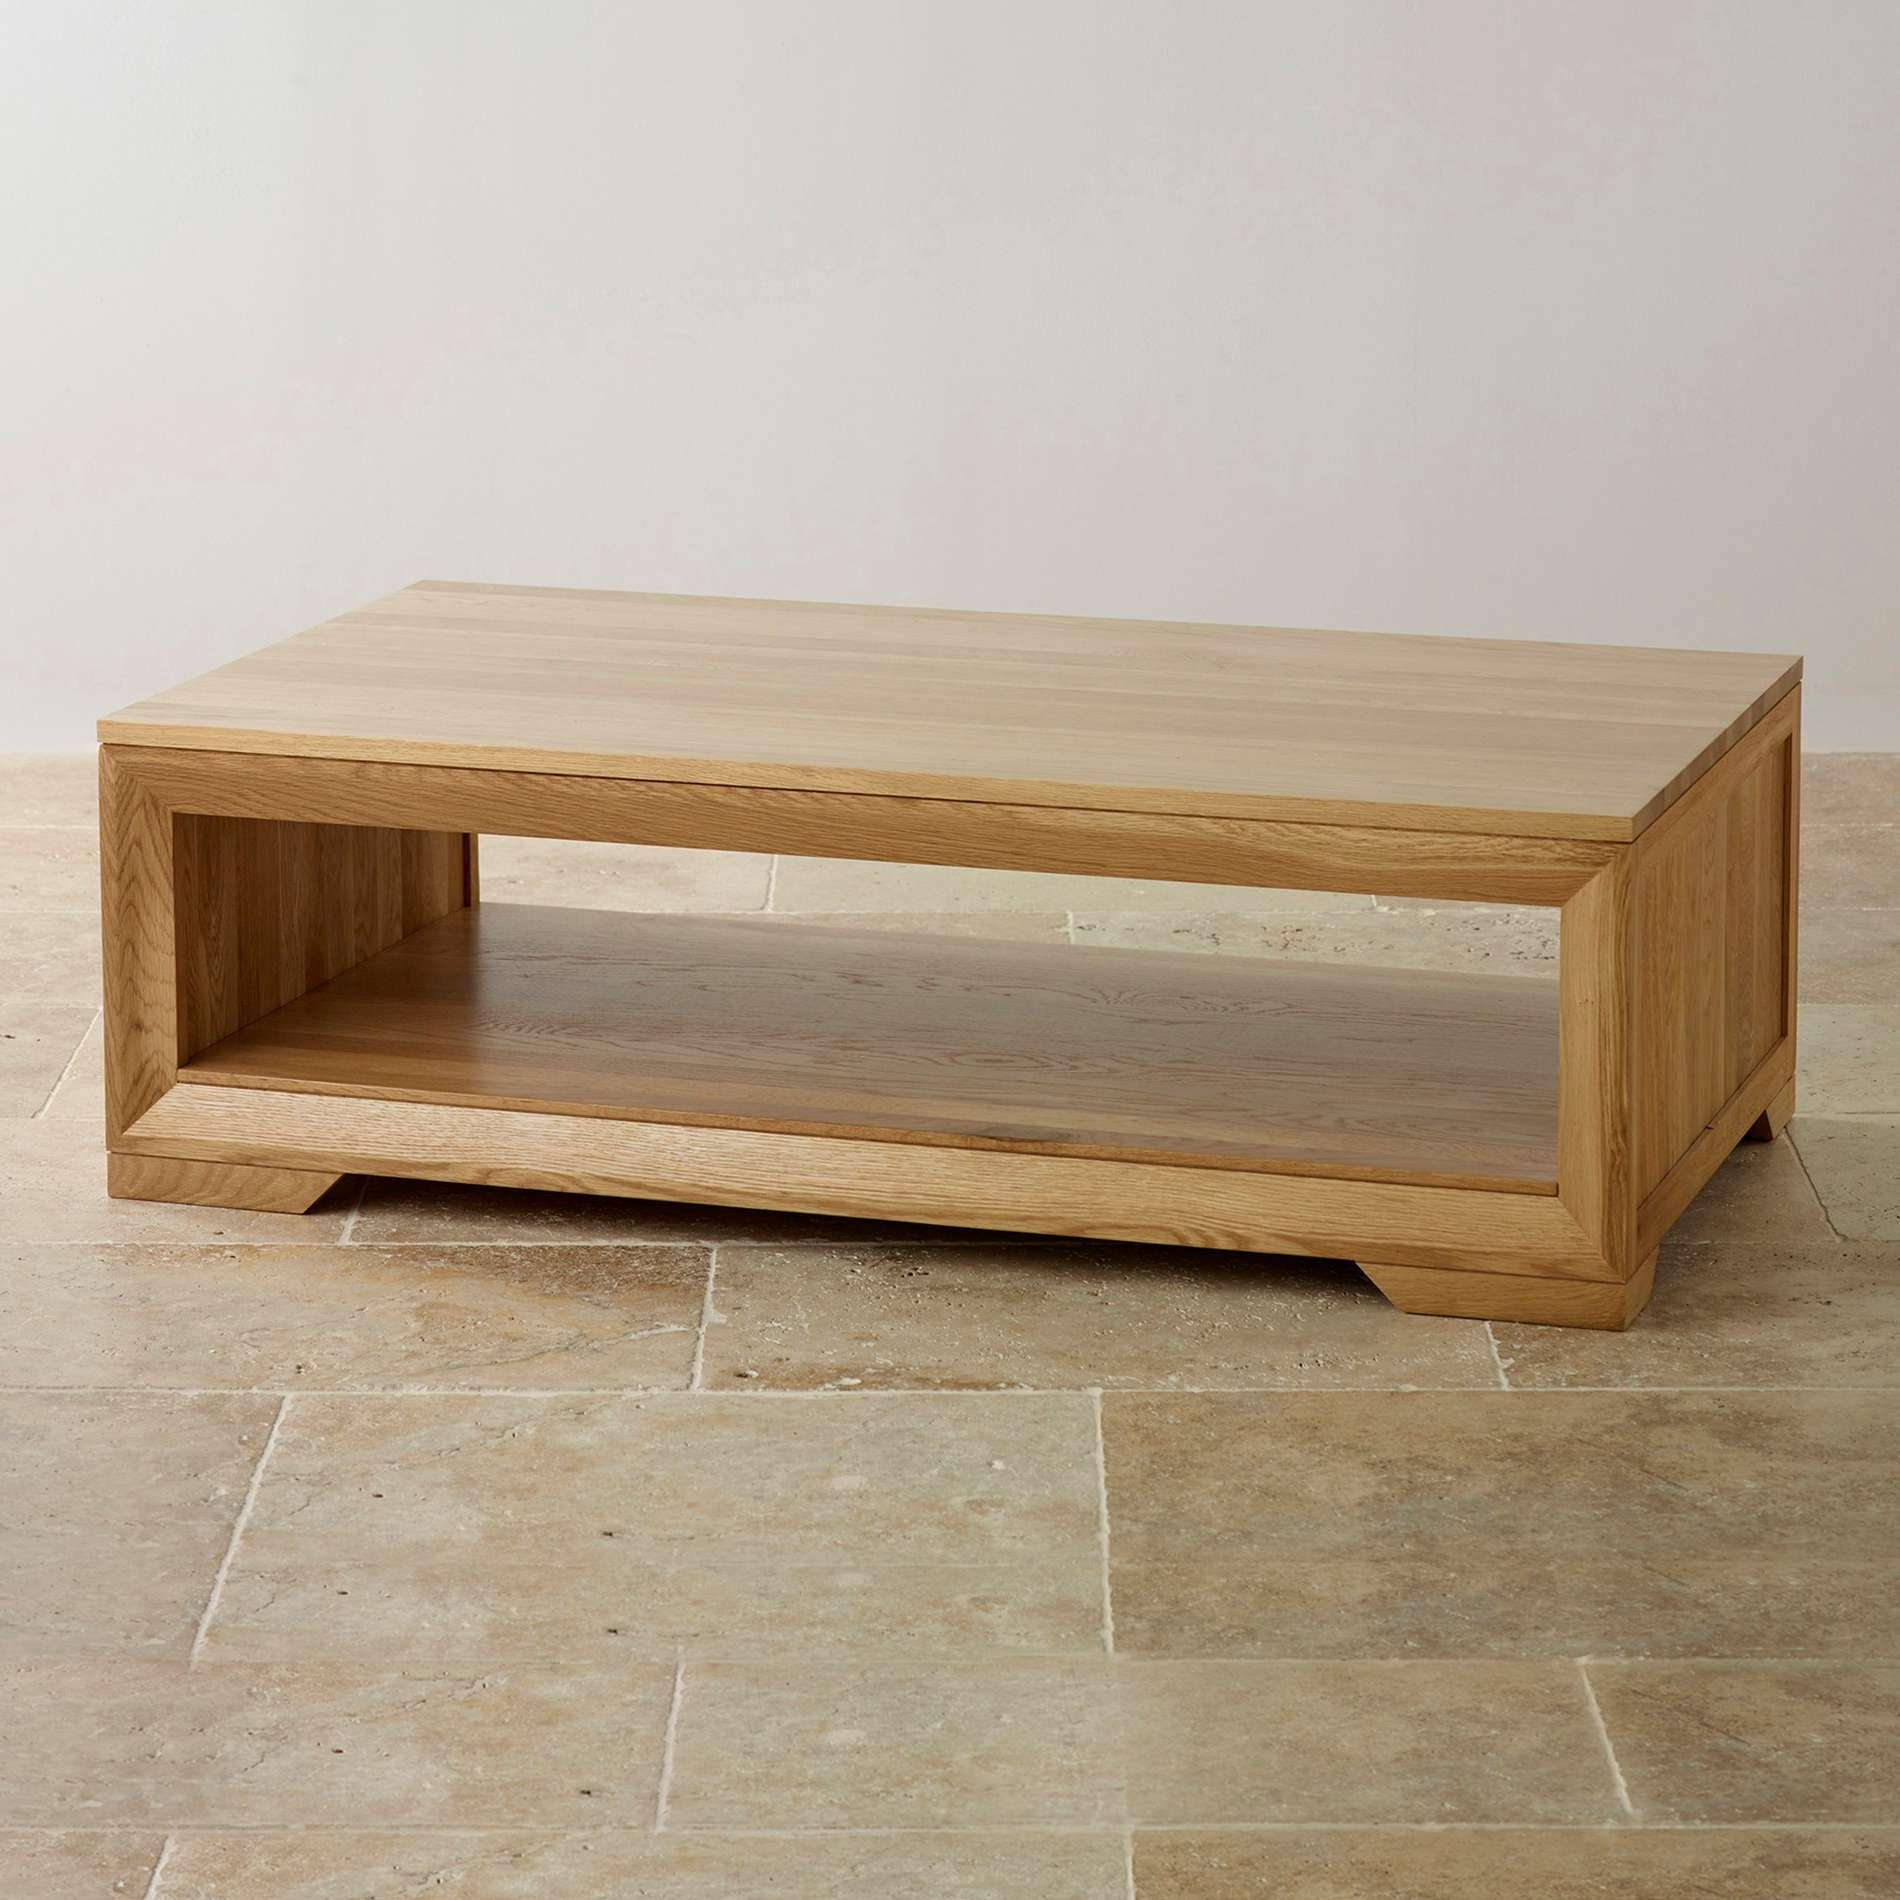 Small Oak Coffee Tables Uk Remodel Ideas Light Oak Coffee Table Within Most Up To Date Light Oak Coffee Tables (View 20 of 20)